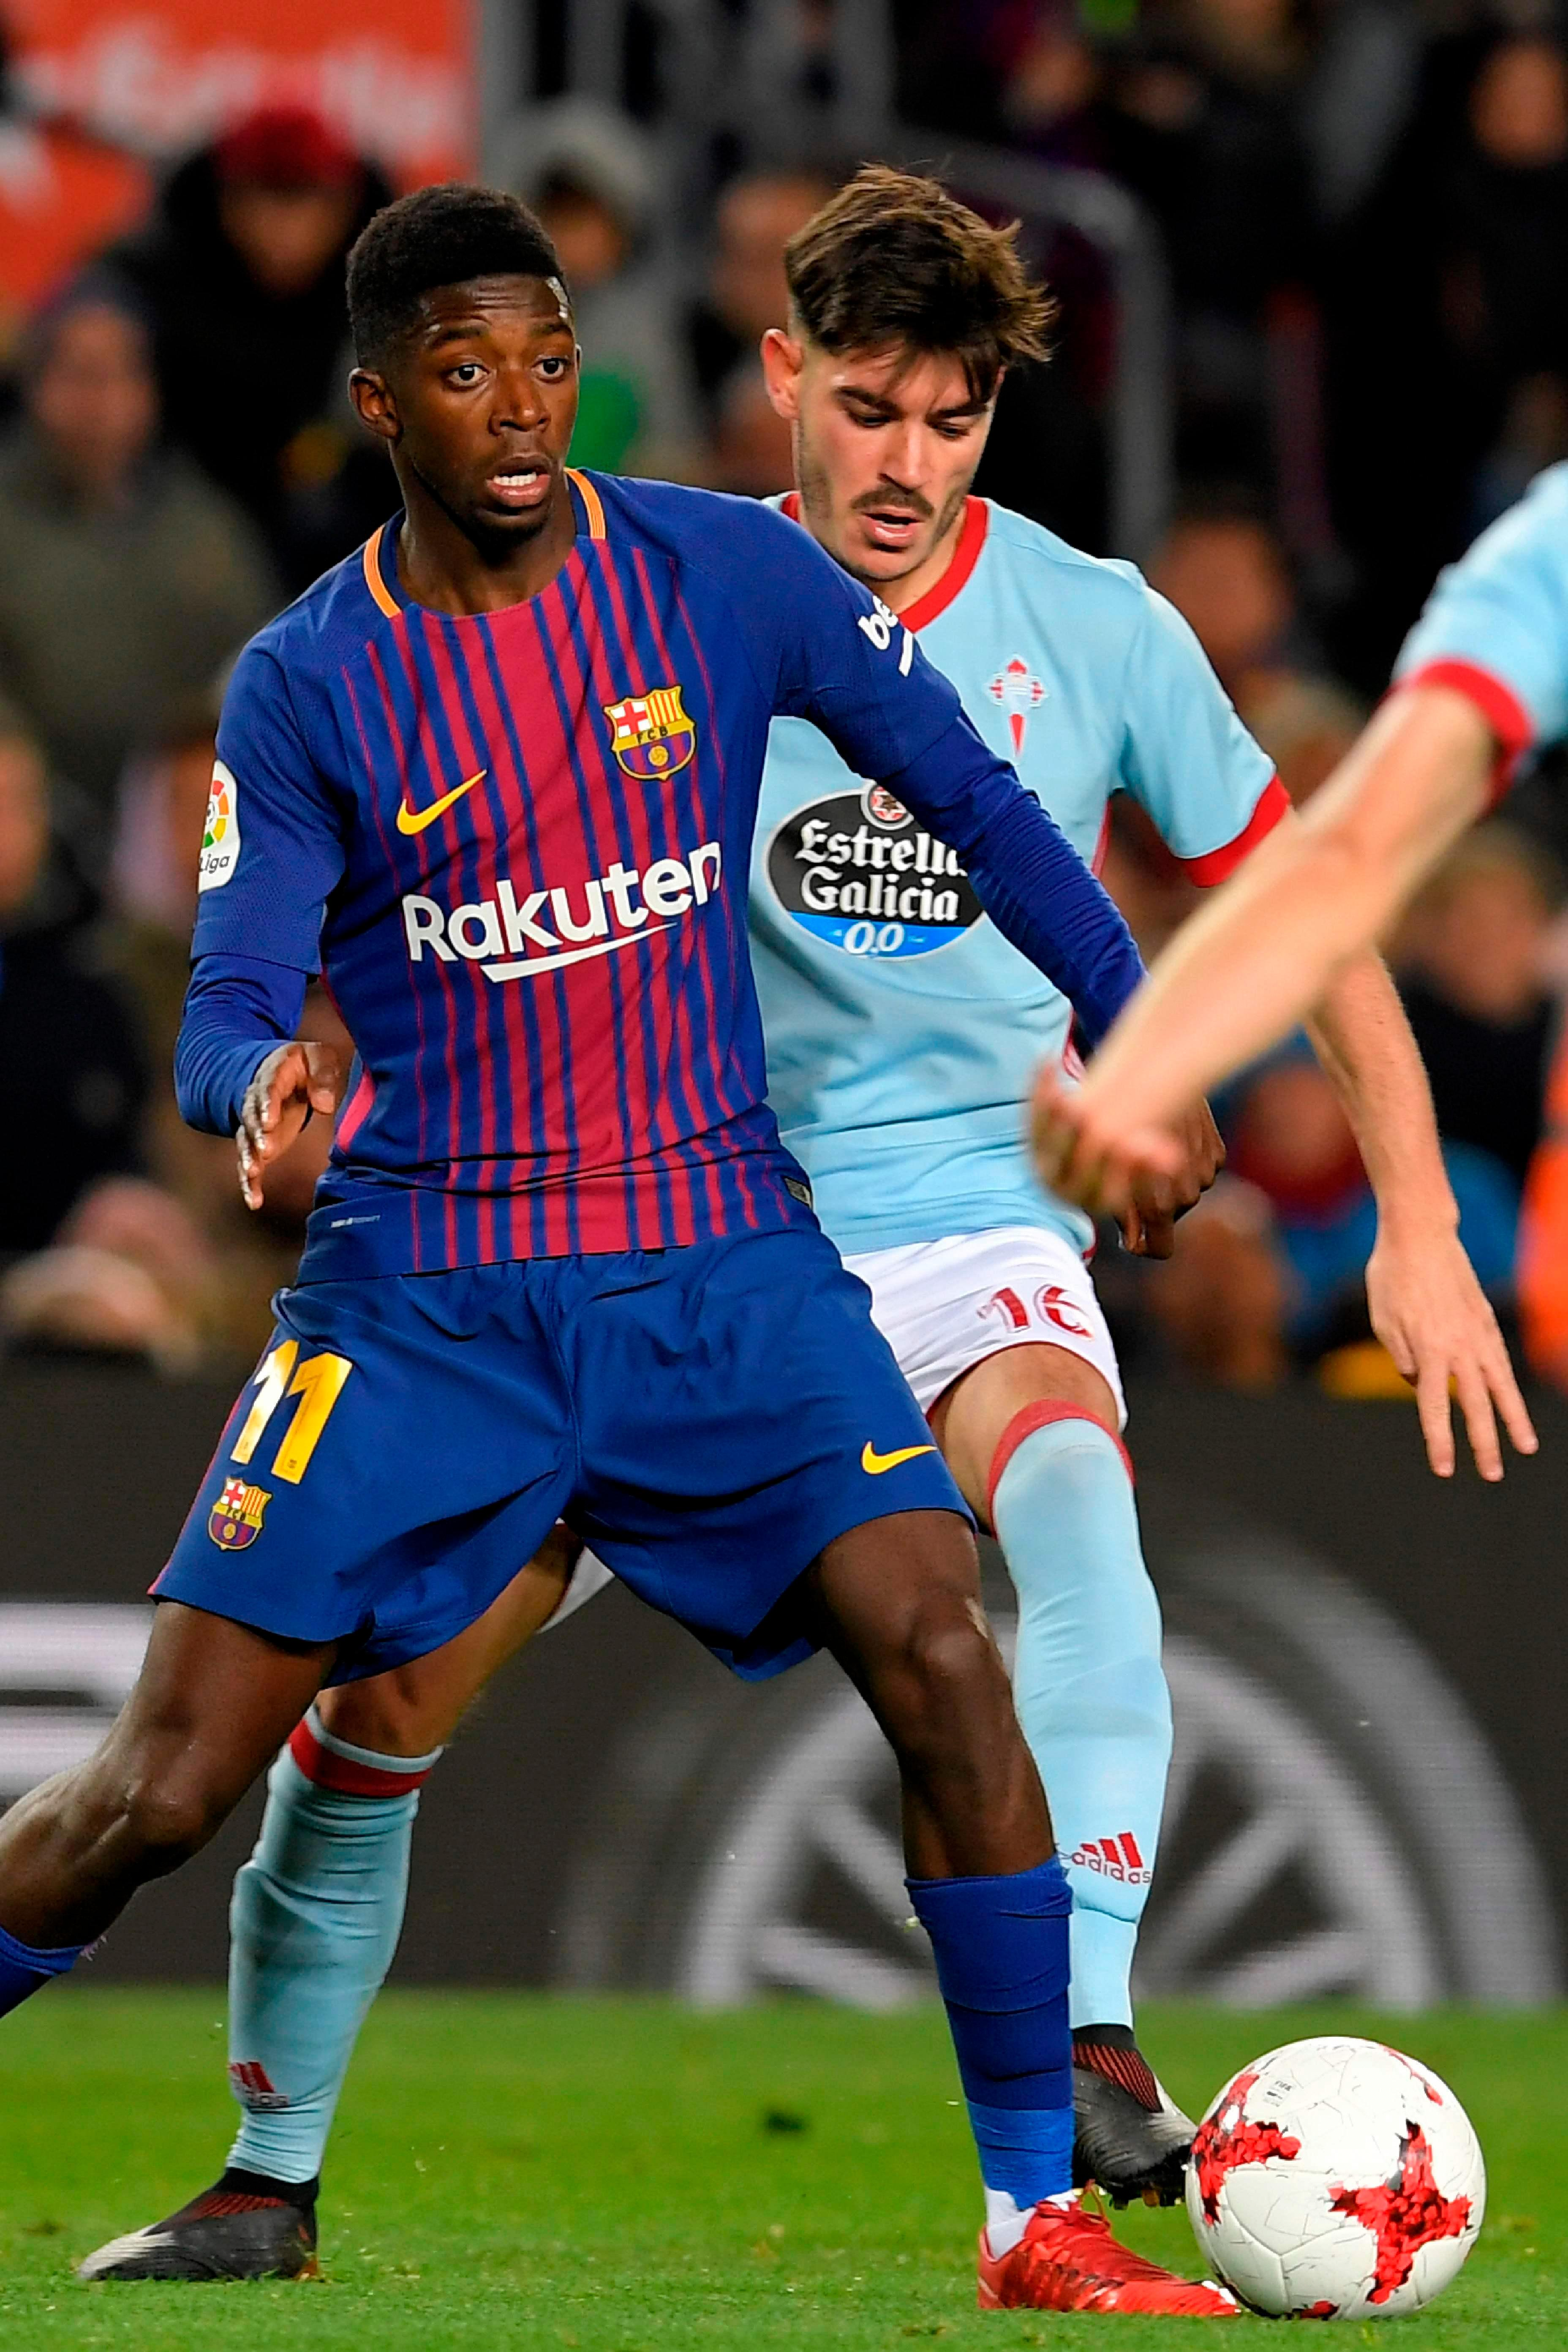 Ousmane Dembele back in Barcelona squad for Getafe clash — in last meeting tore hamstring and spent four months out